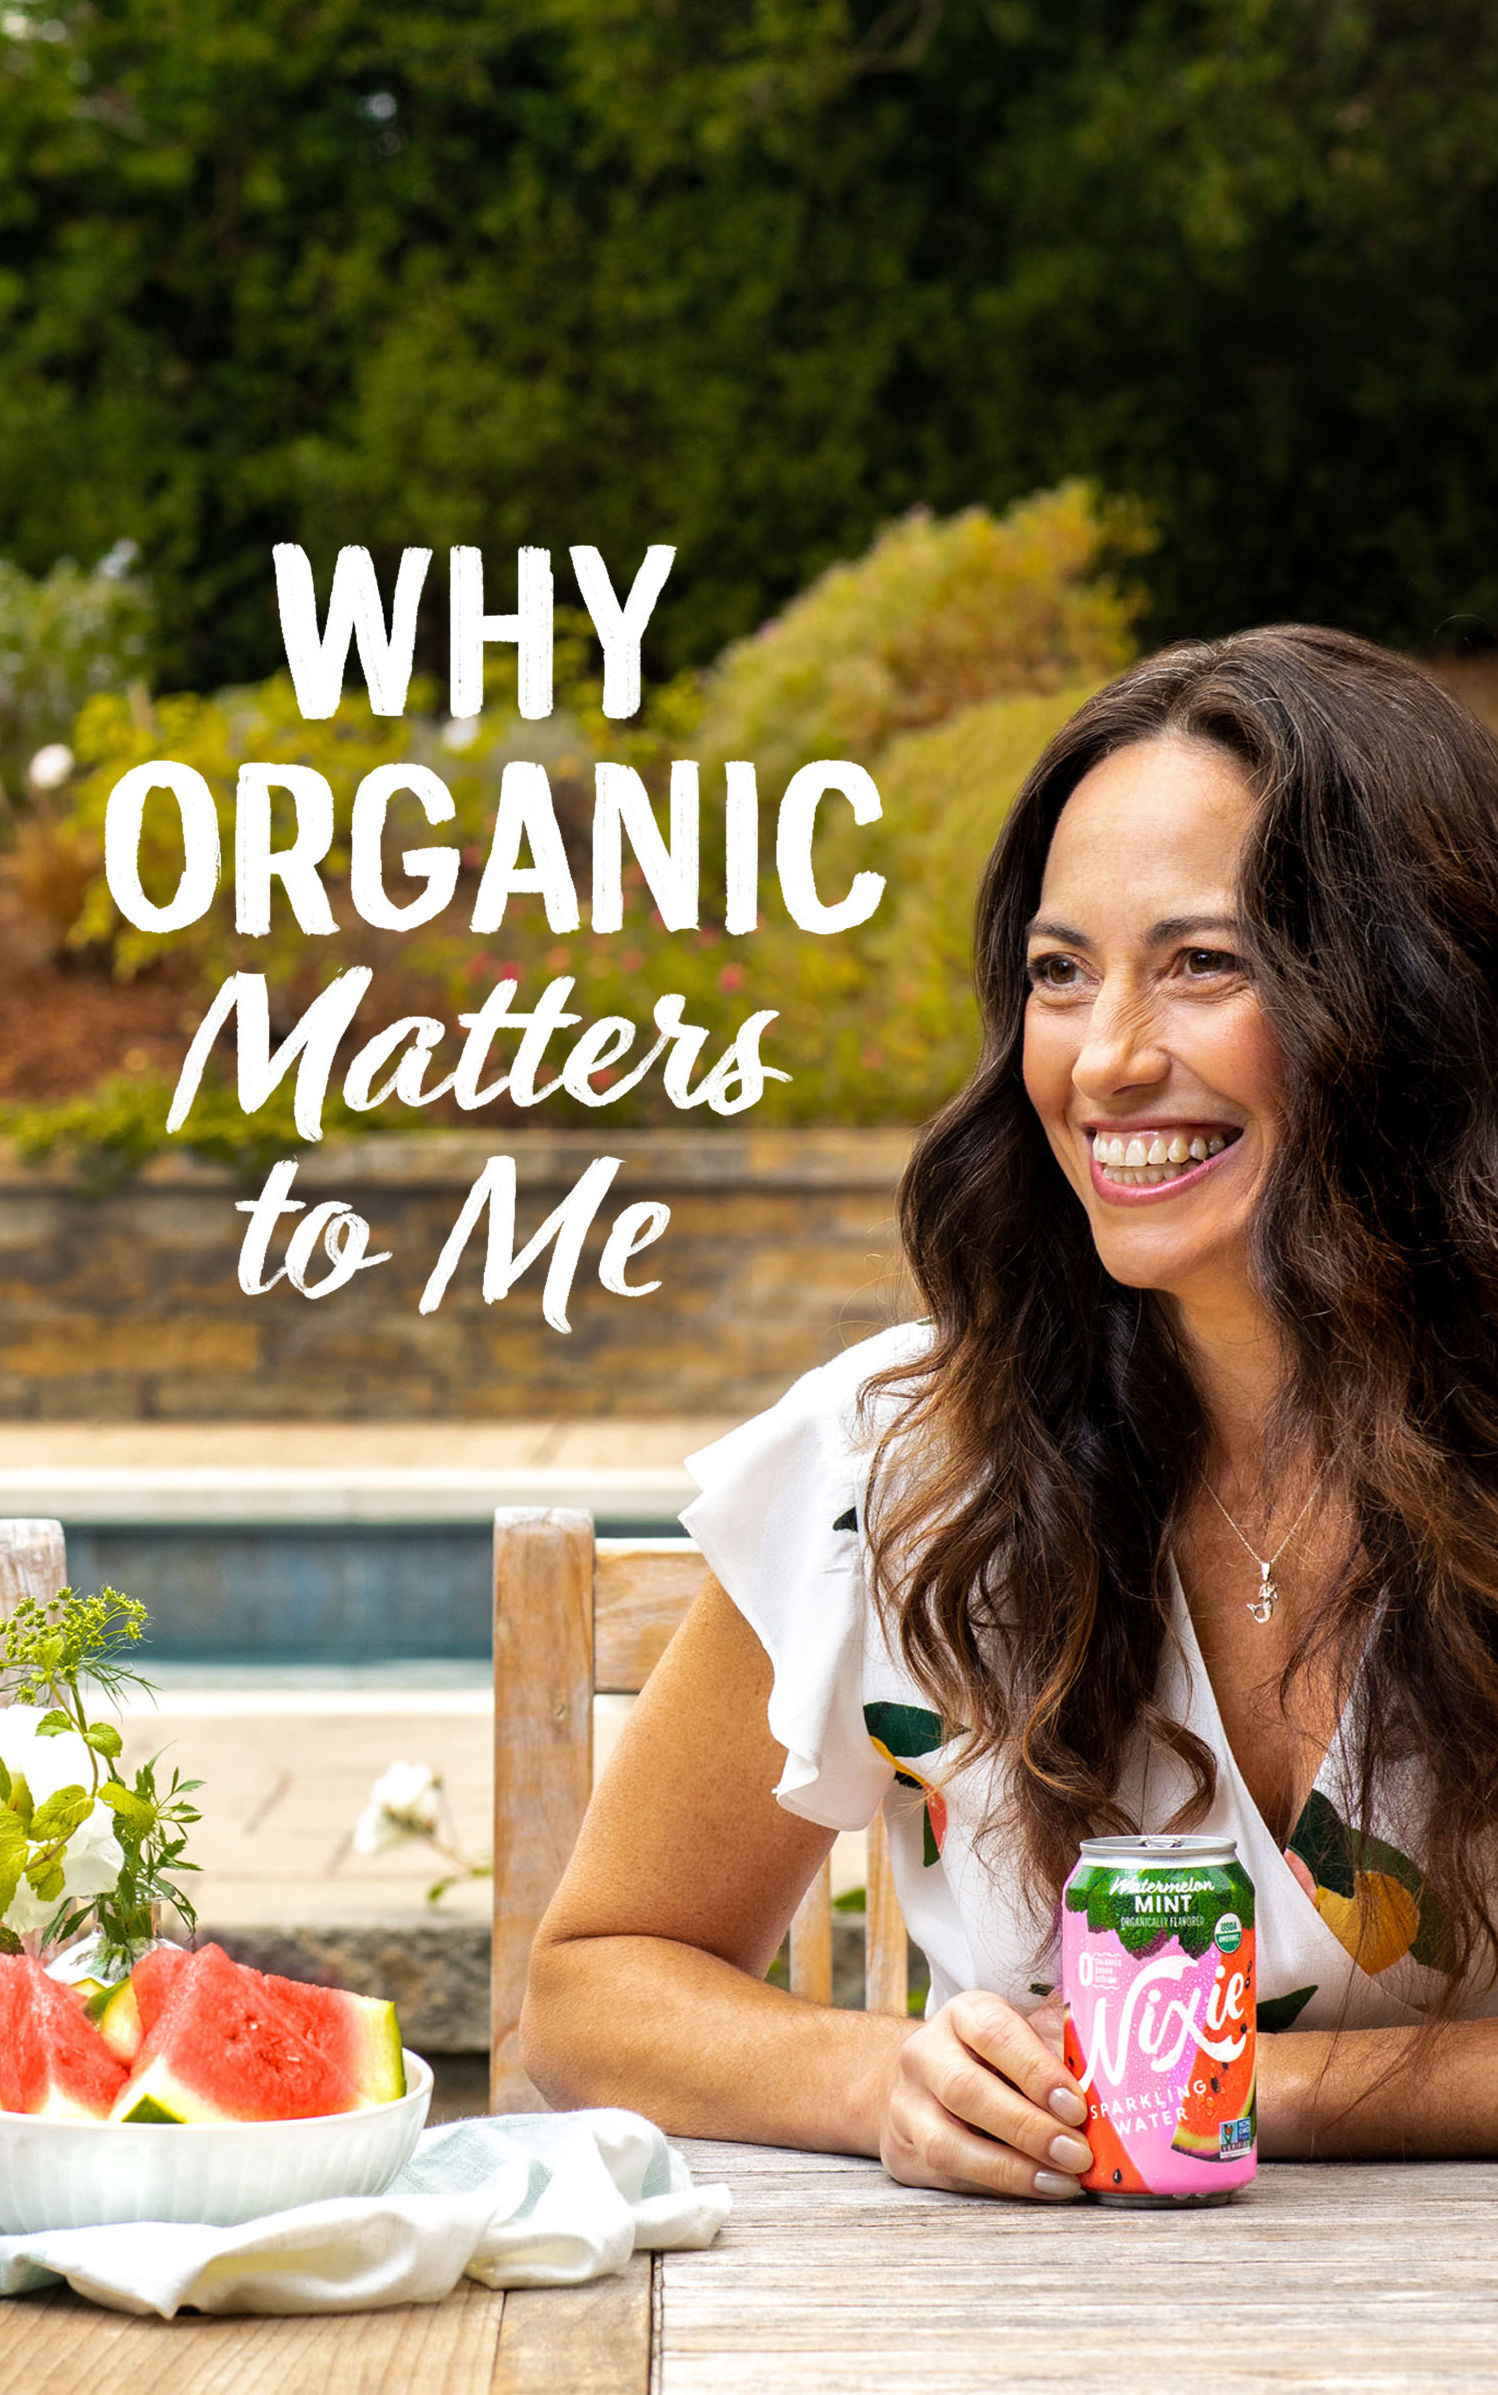 Why Organic Matters to Me